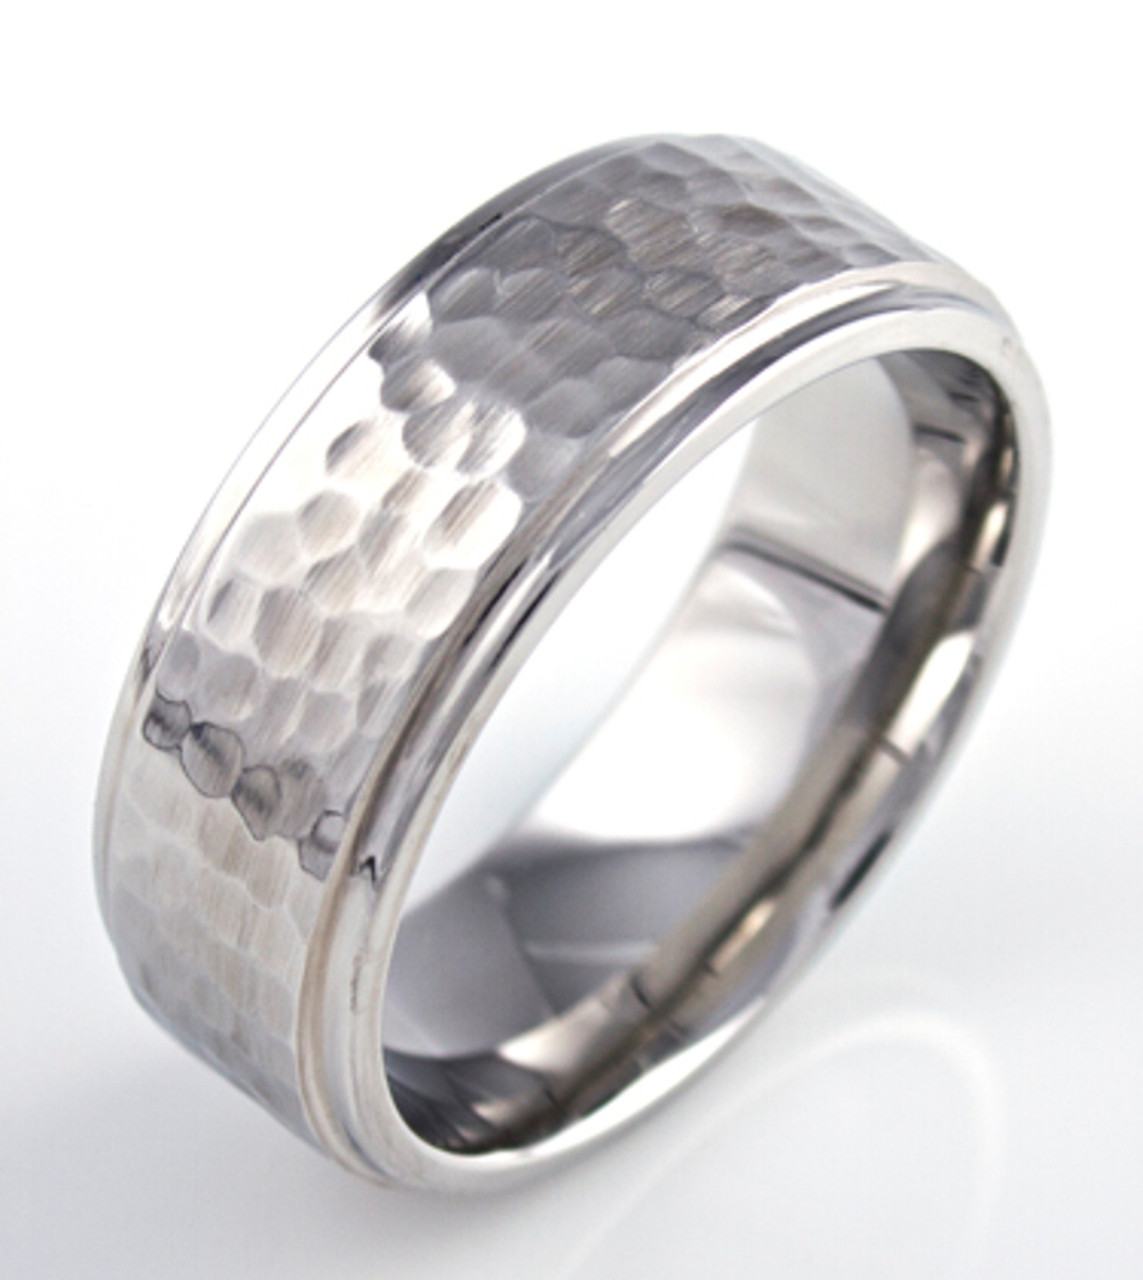 Hammered Wedding Band Unique Titanium Rings More TitaniumBuzz